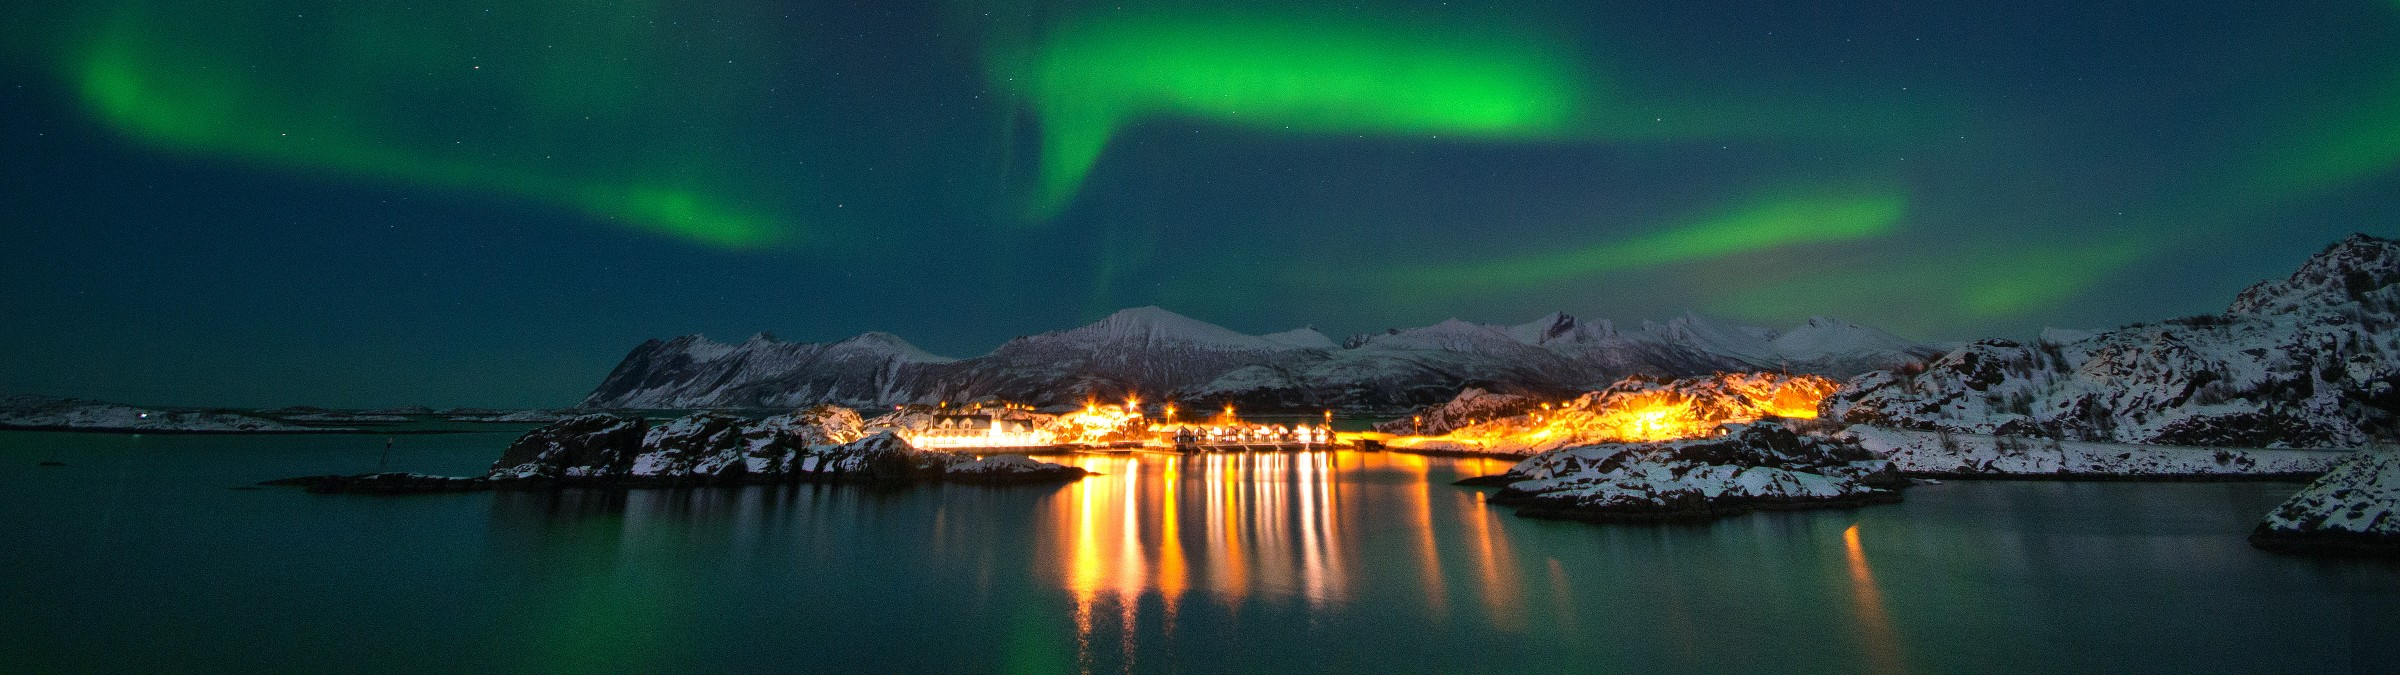 Northern Lights, Senja, Norway Credit Hamn i Senja